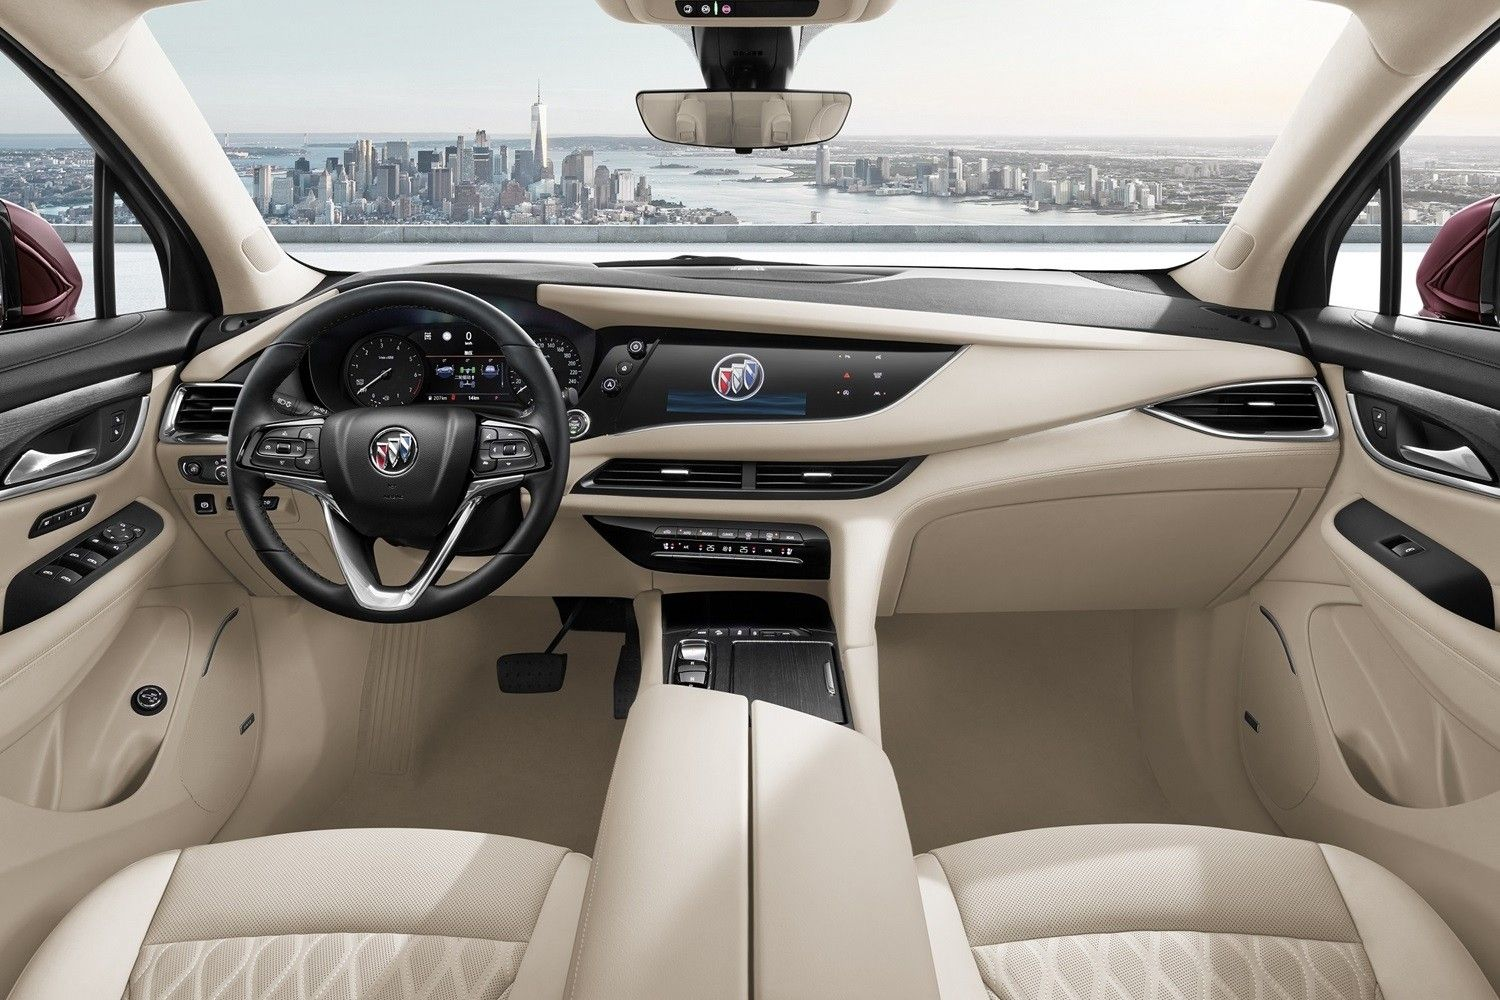 2020 Buick Enclave Interior Performance In 2020 Buick Enclave Buick Enclave